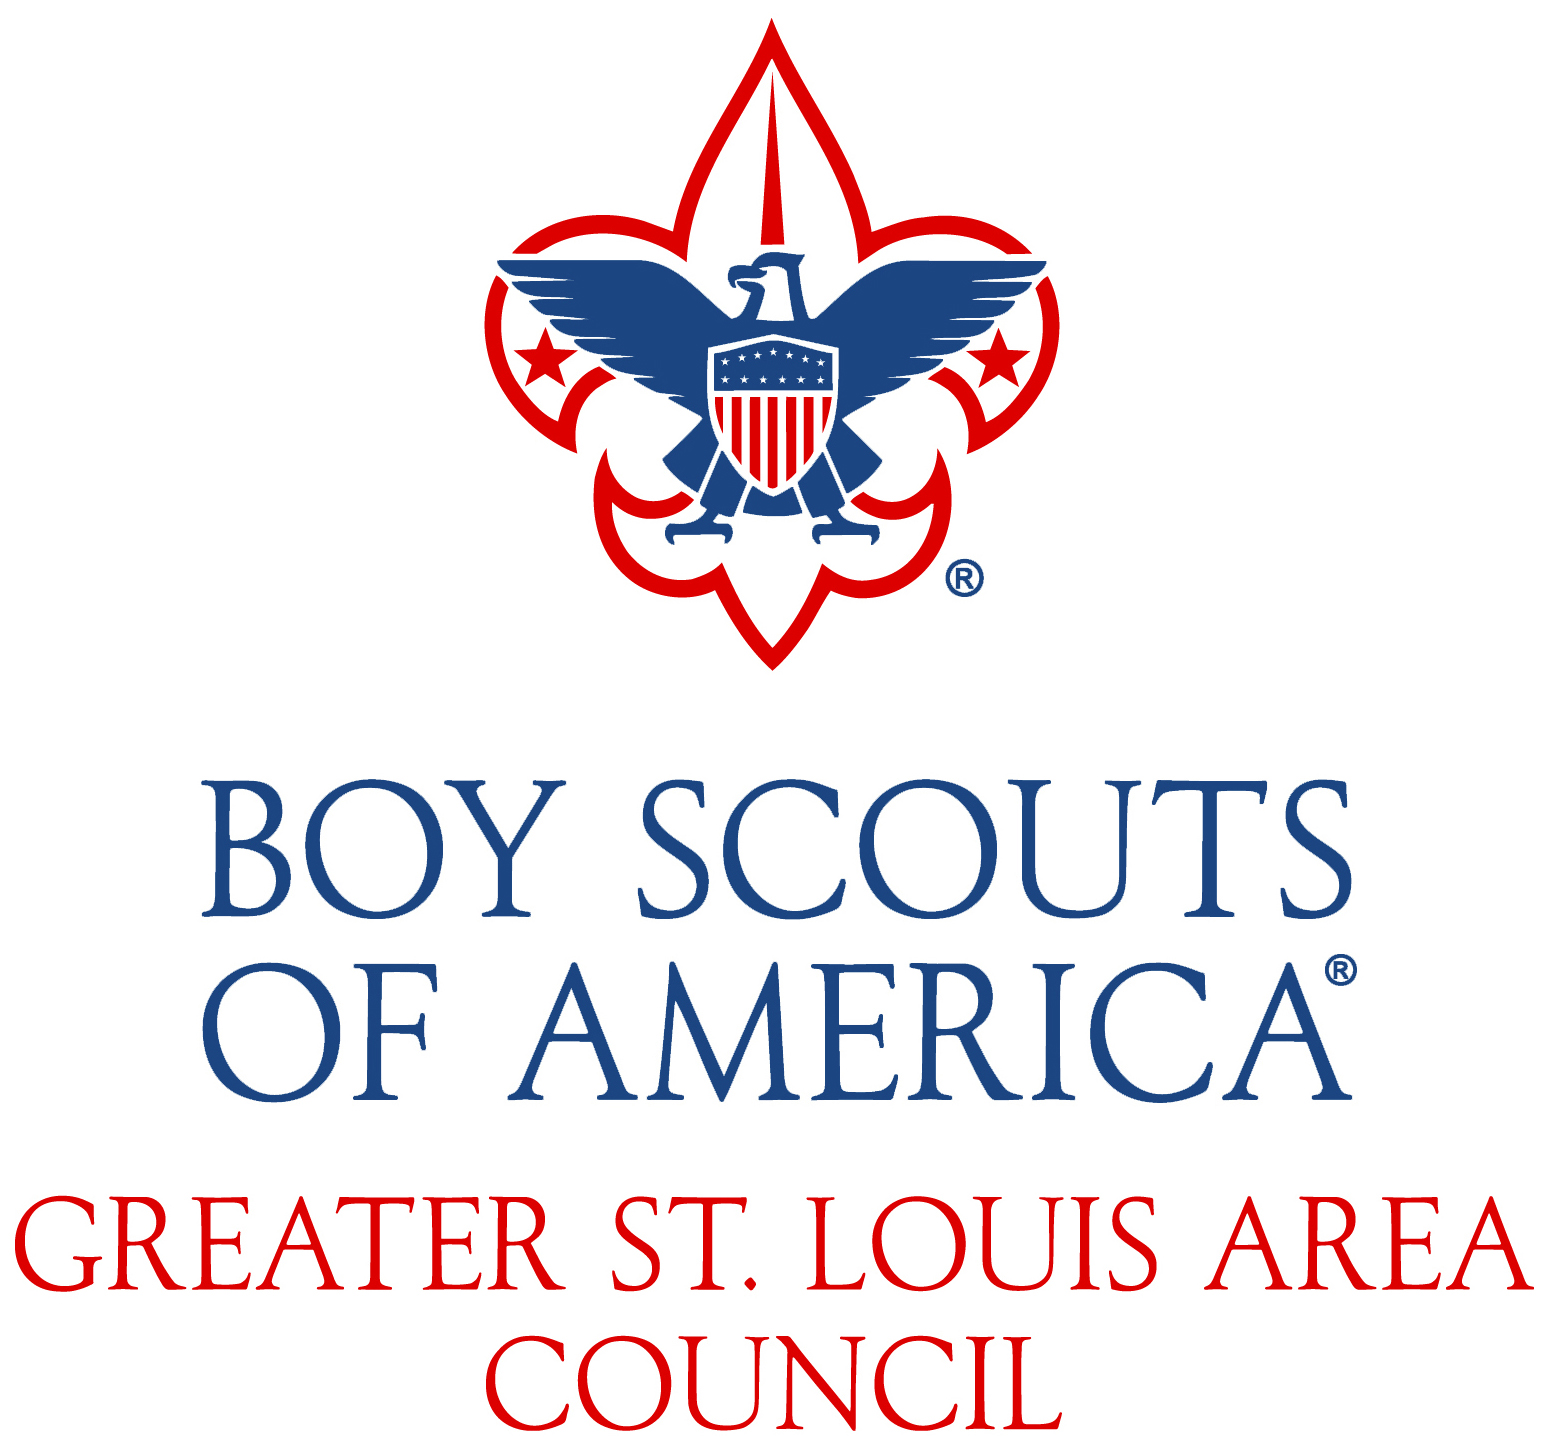 Greater St Louis Area Council Boy Scouts of America